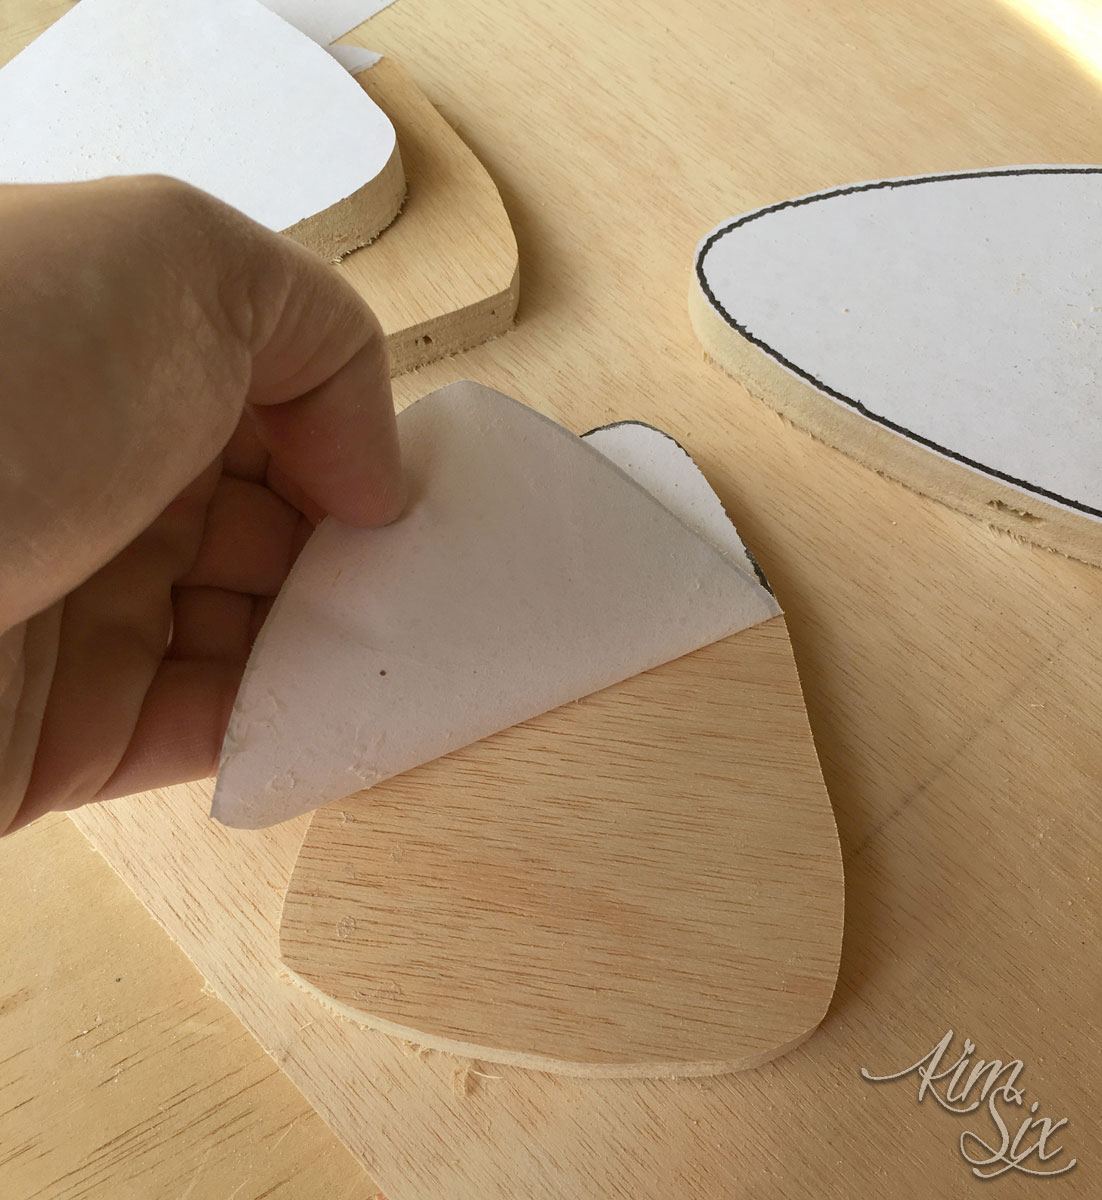 Paper scroll saw templates